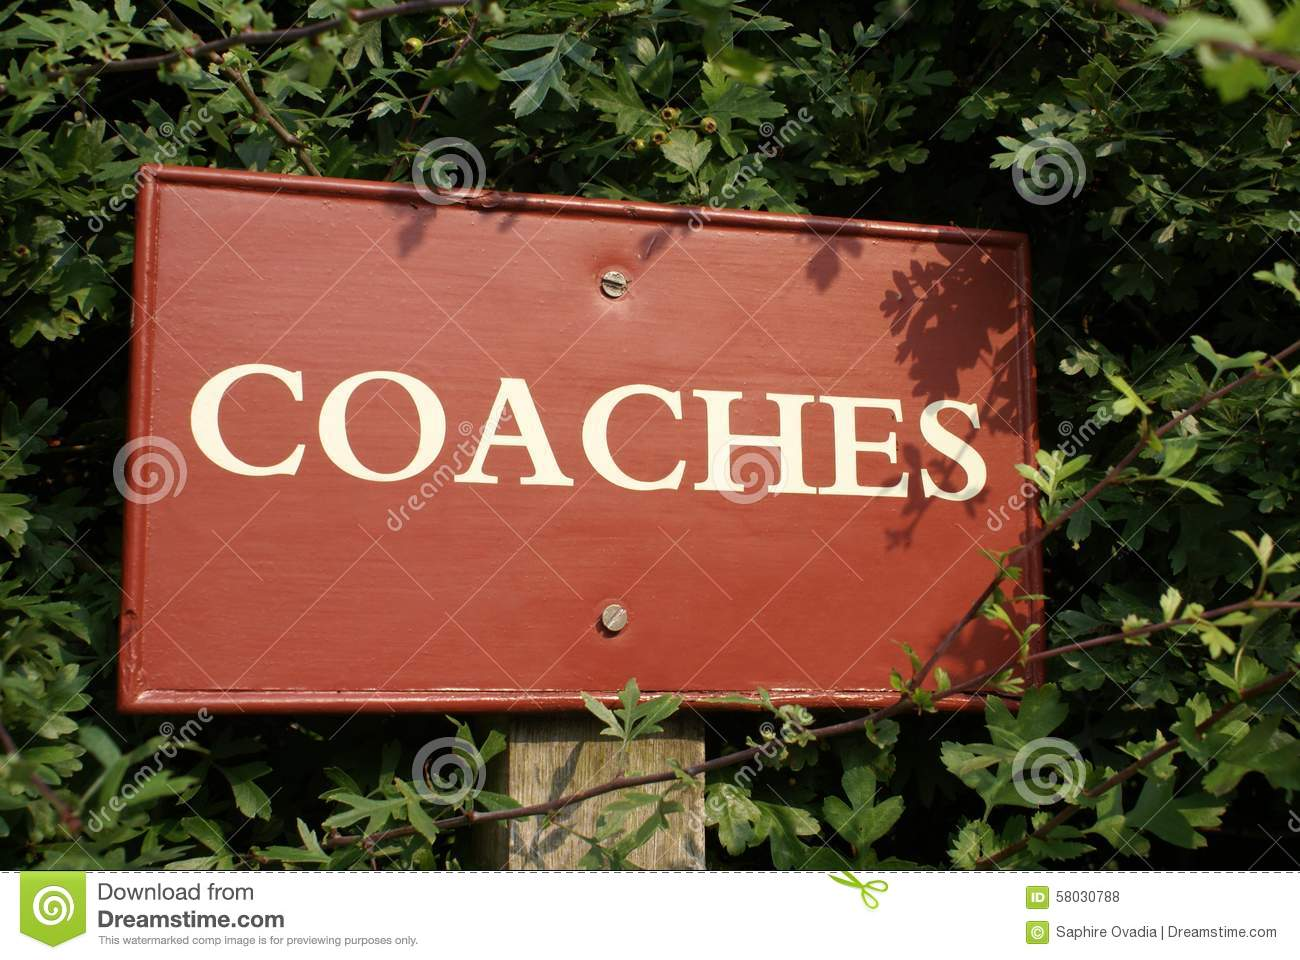 Coaches sign